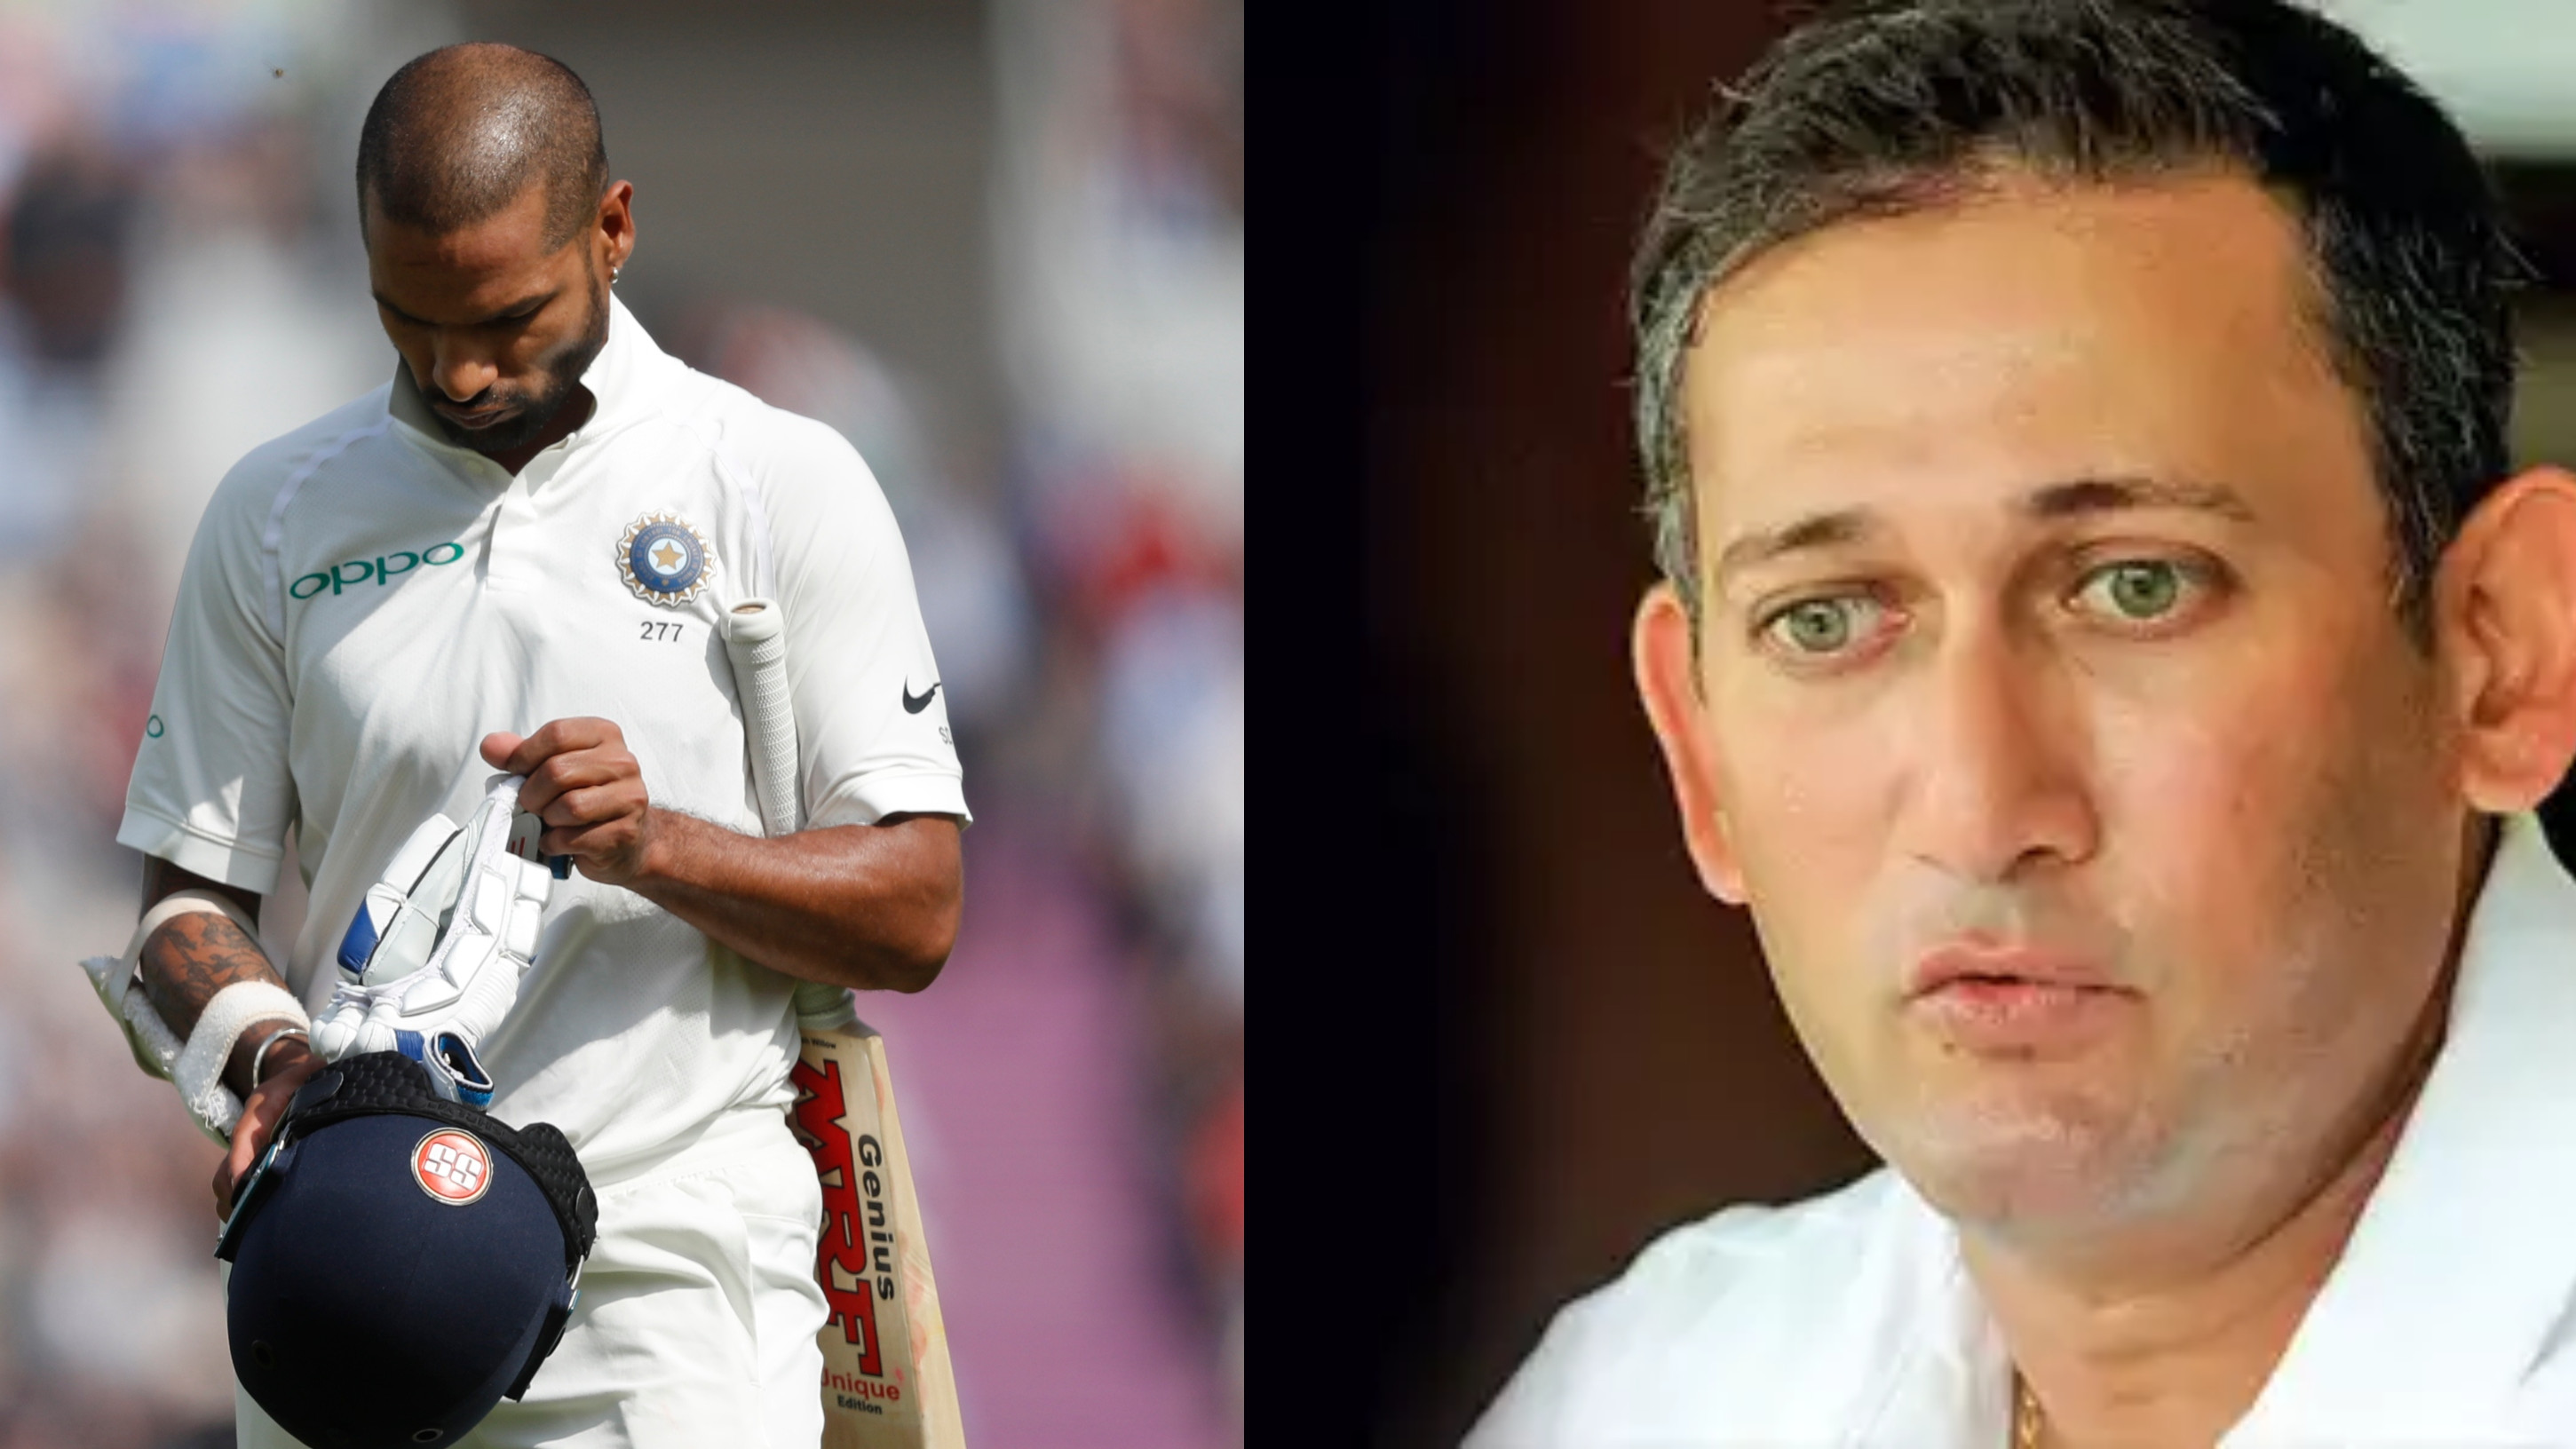 ENG vs IND 2018: Ajit Agarkar not convinced with Shikhar Dhawan's technique in Tests after England debacle